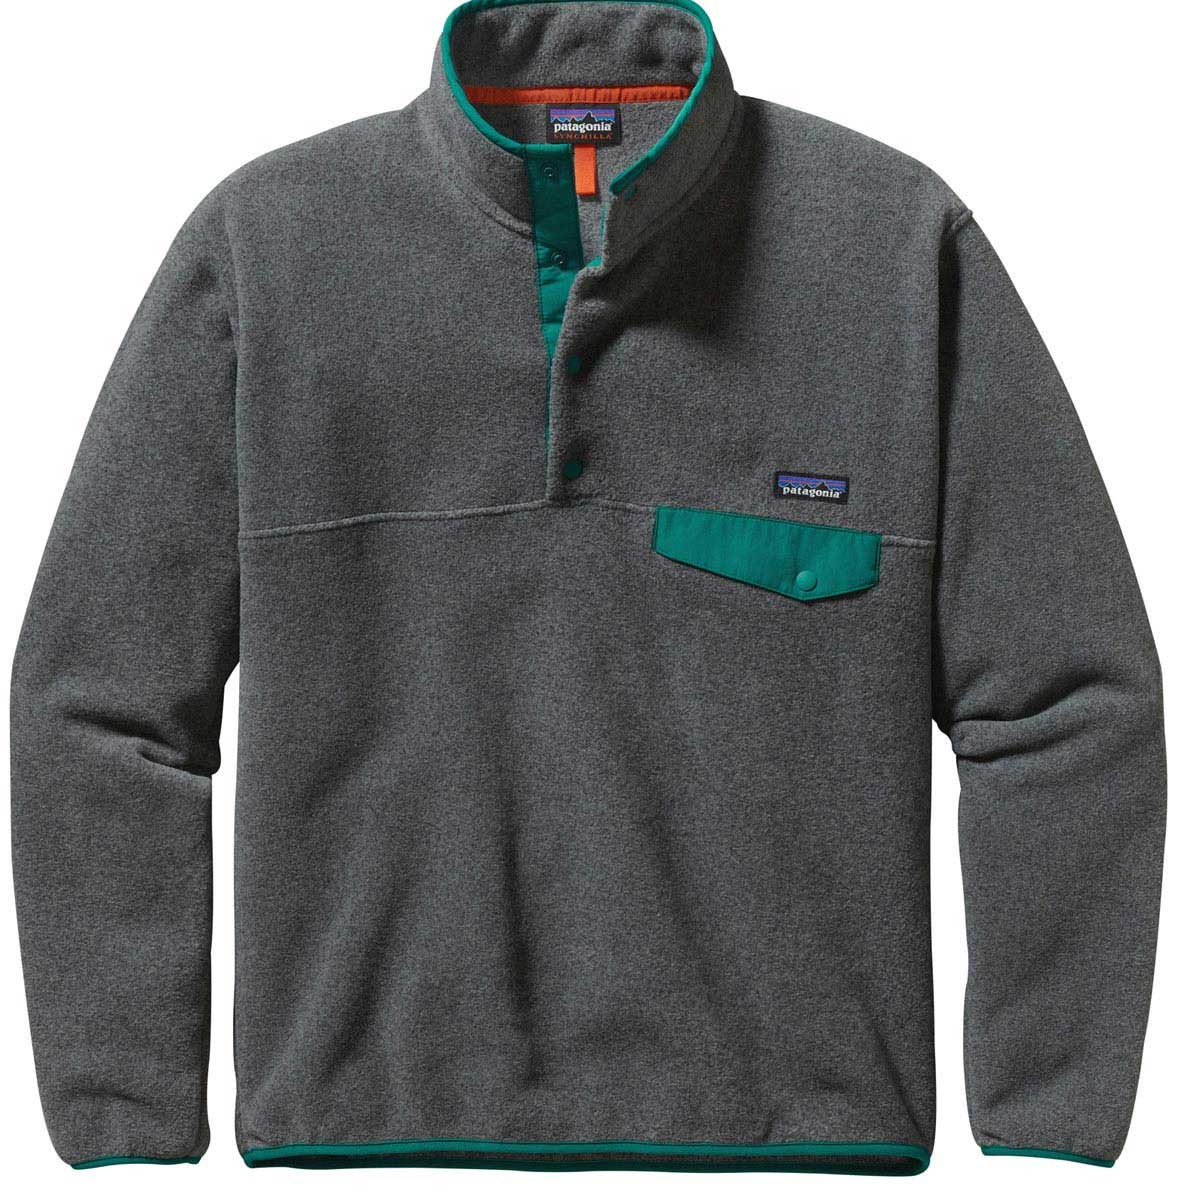 Patagonia Synchilla | Patagonias on Sale | Patagonia Synchilla Mens